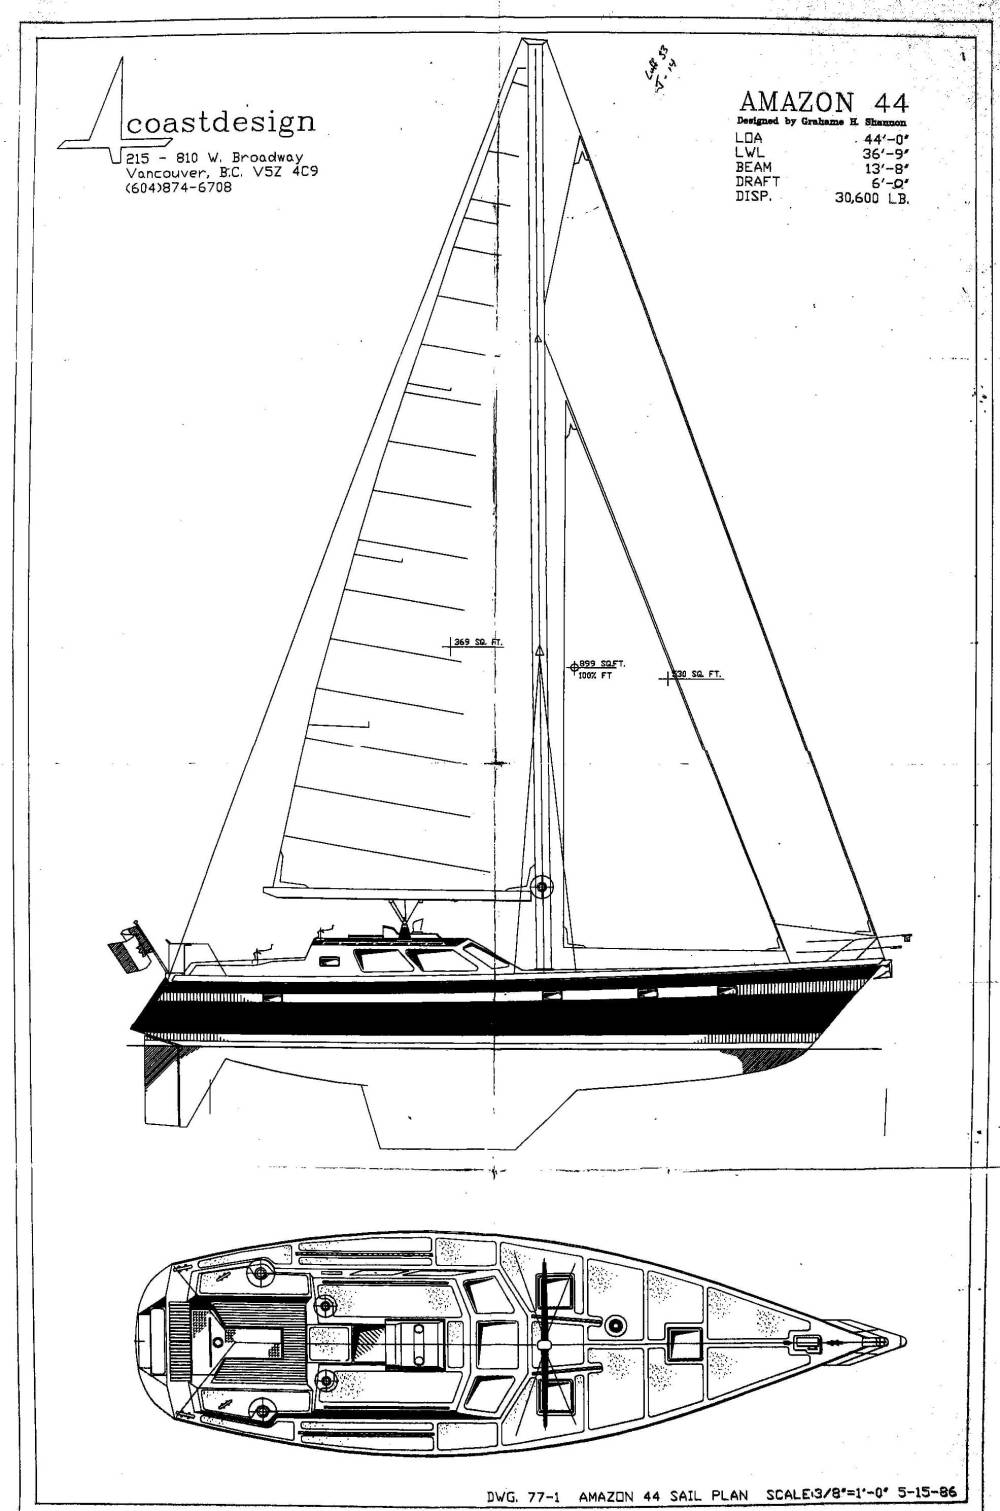 medium resolution of this machine is made for offshore voyaging and supports single handed sailing with all running rigging in the cockpit including the control line for the